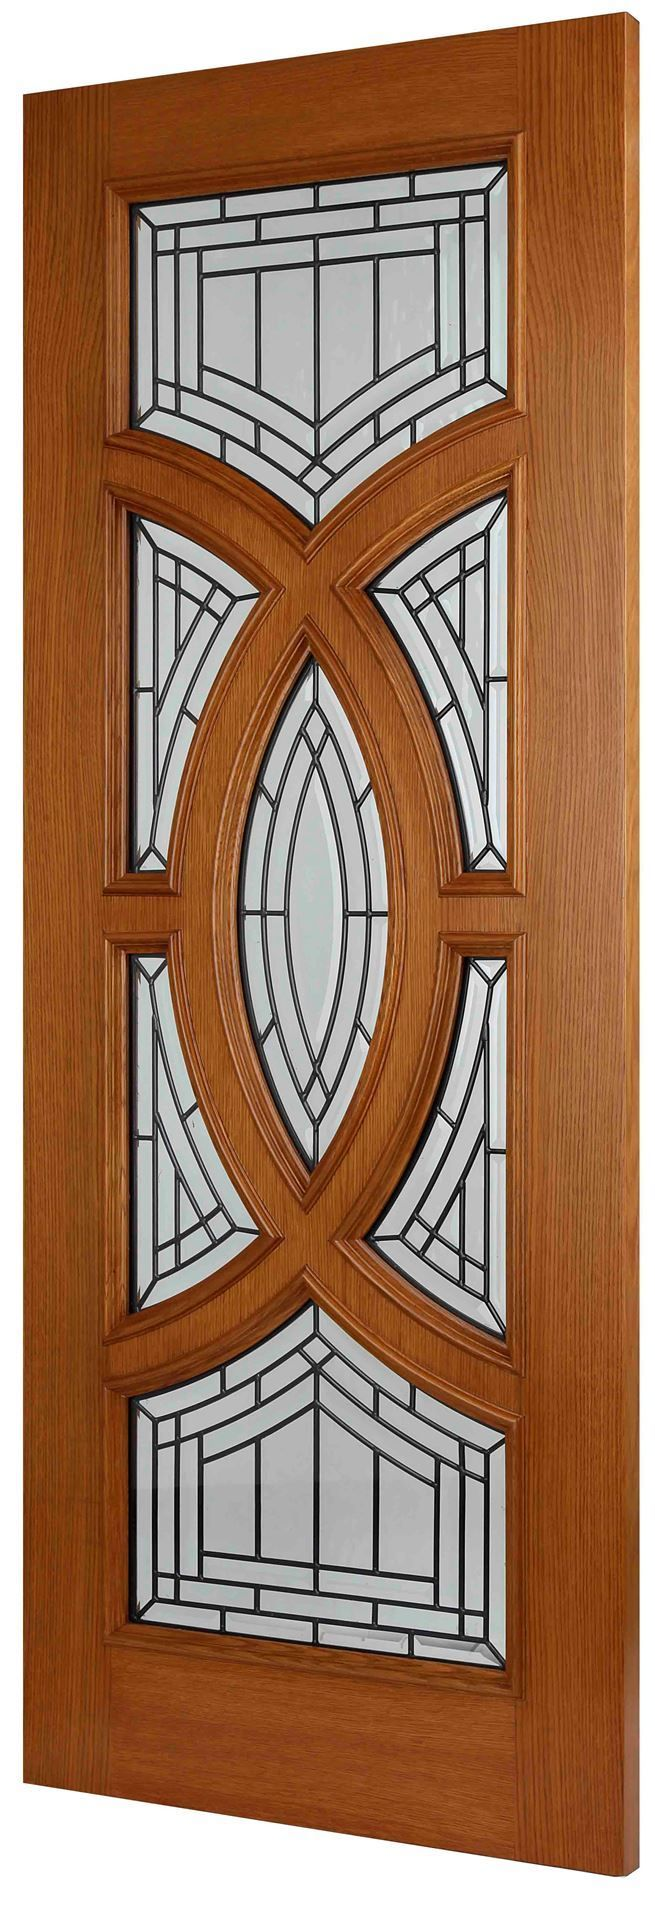 OLYMPIA - Make a great first impression with beautifully designed and high quality Statement Making Doors. At Todd Doors we are dedicated in providing you ... : todd door - pezcame.com